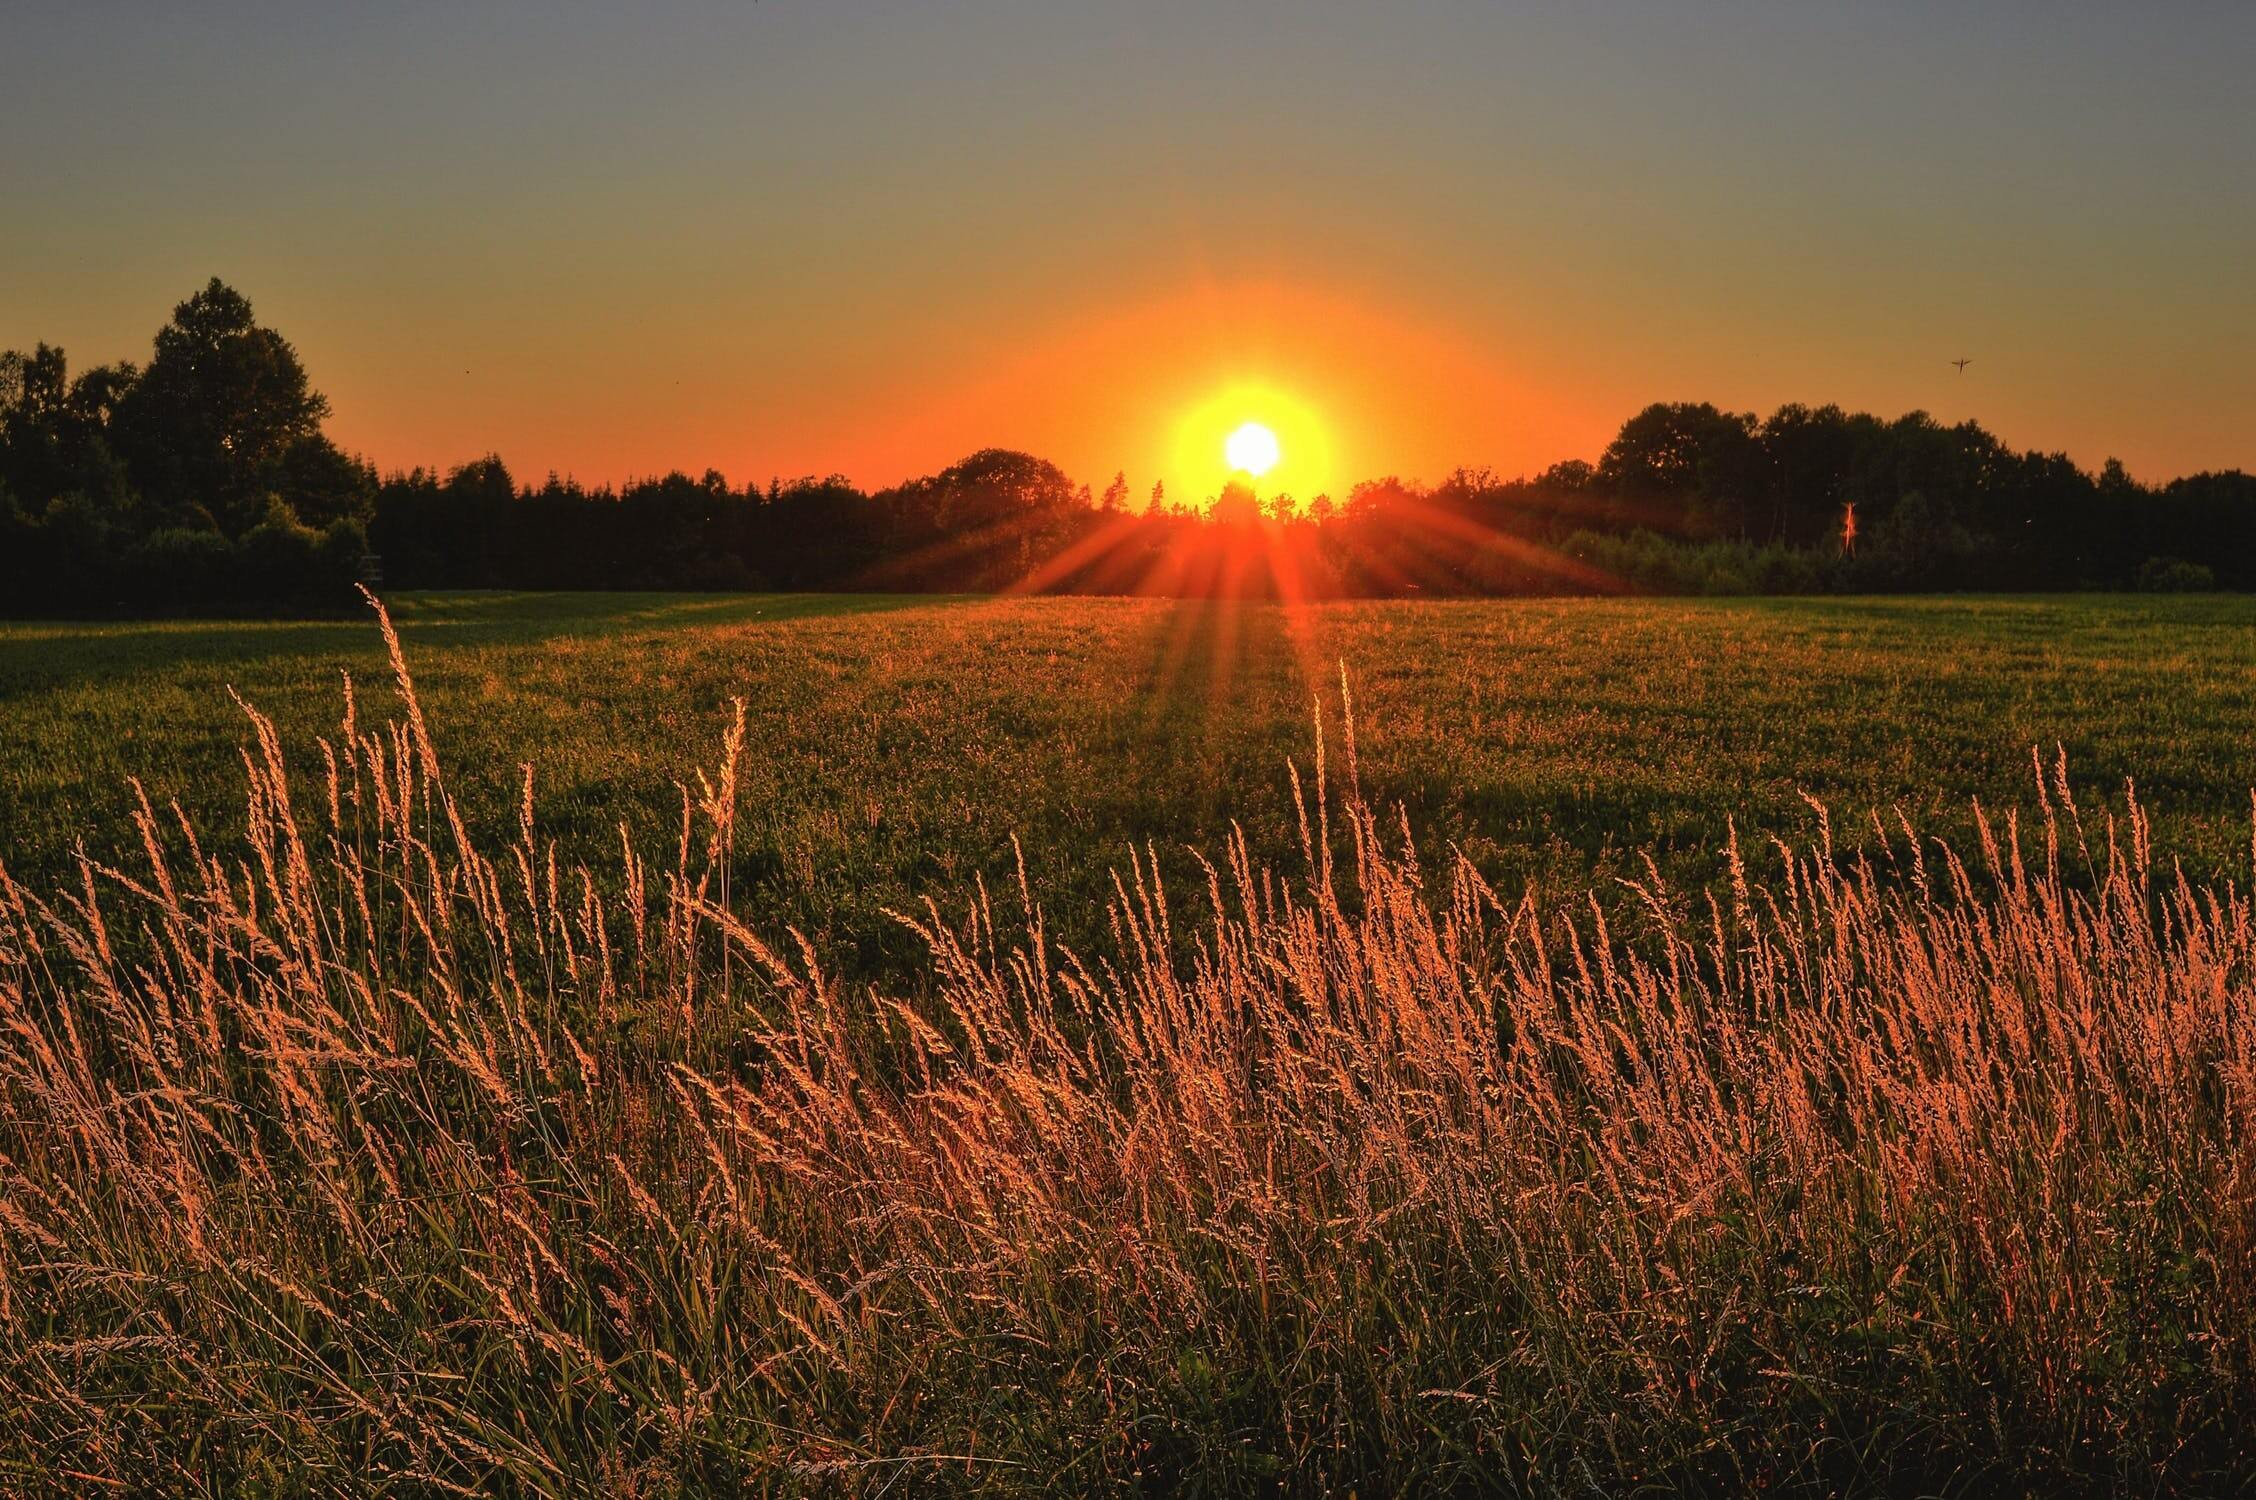 The sun going down over a wheat field. Some individuals who have alzheimers may suffer from sundowning.